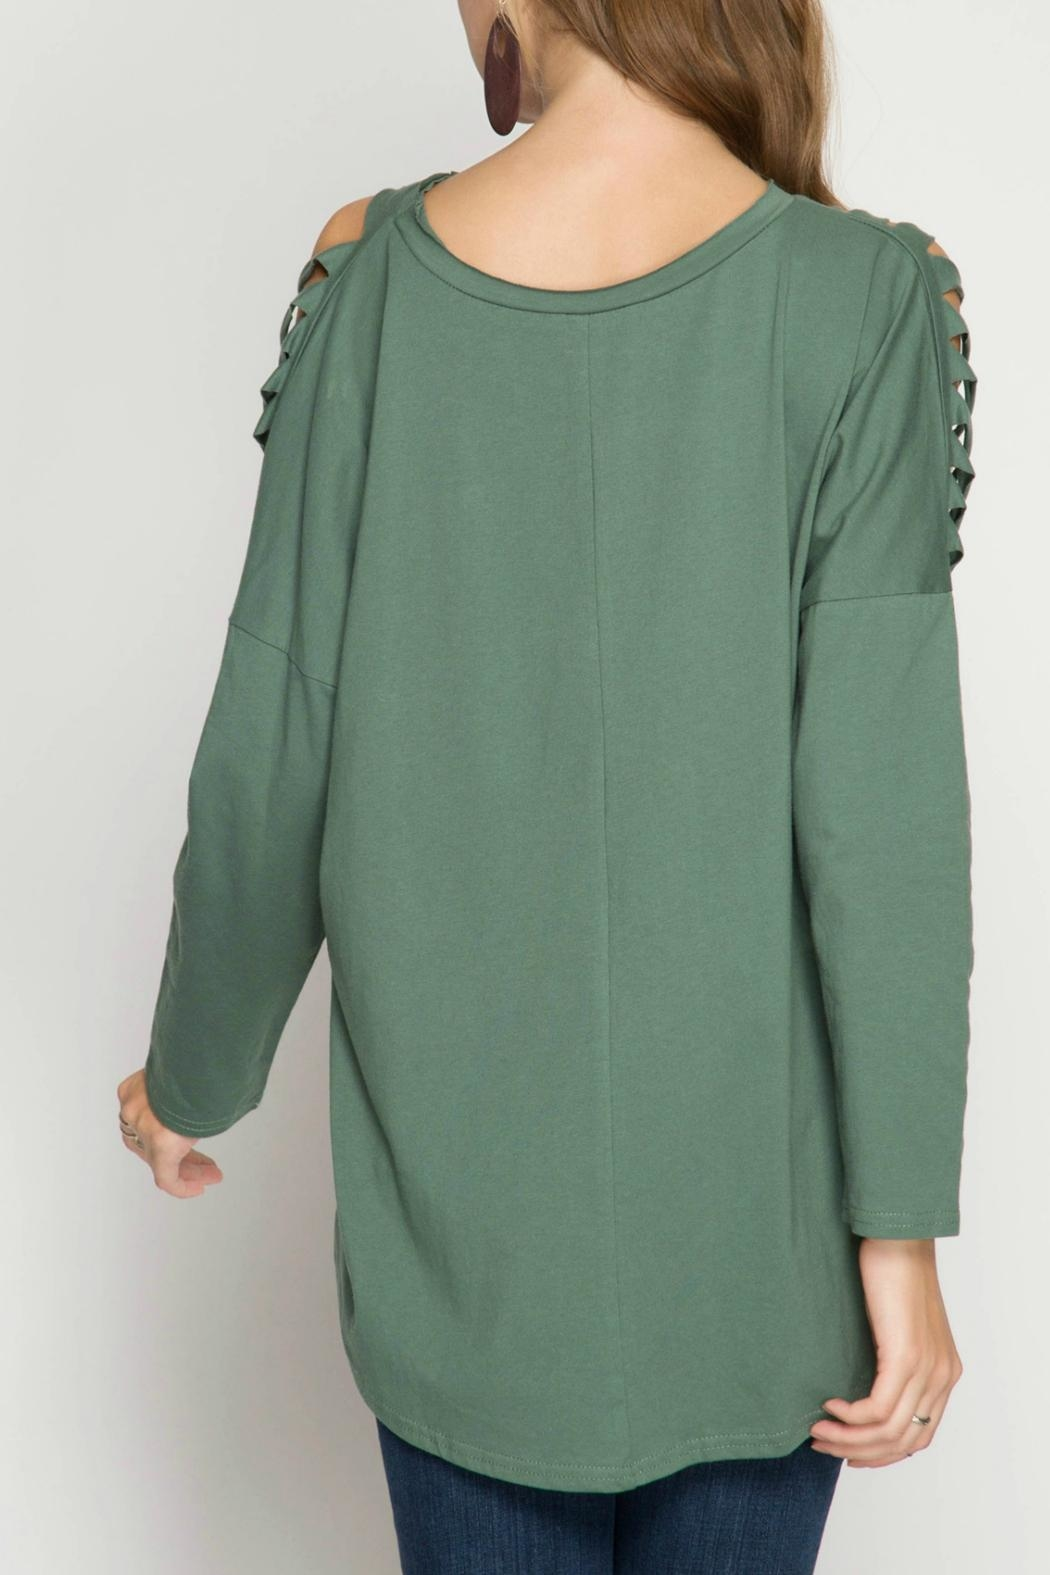 She + Sky Cactus Green Knit-Top - Front Full Image